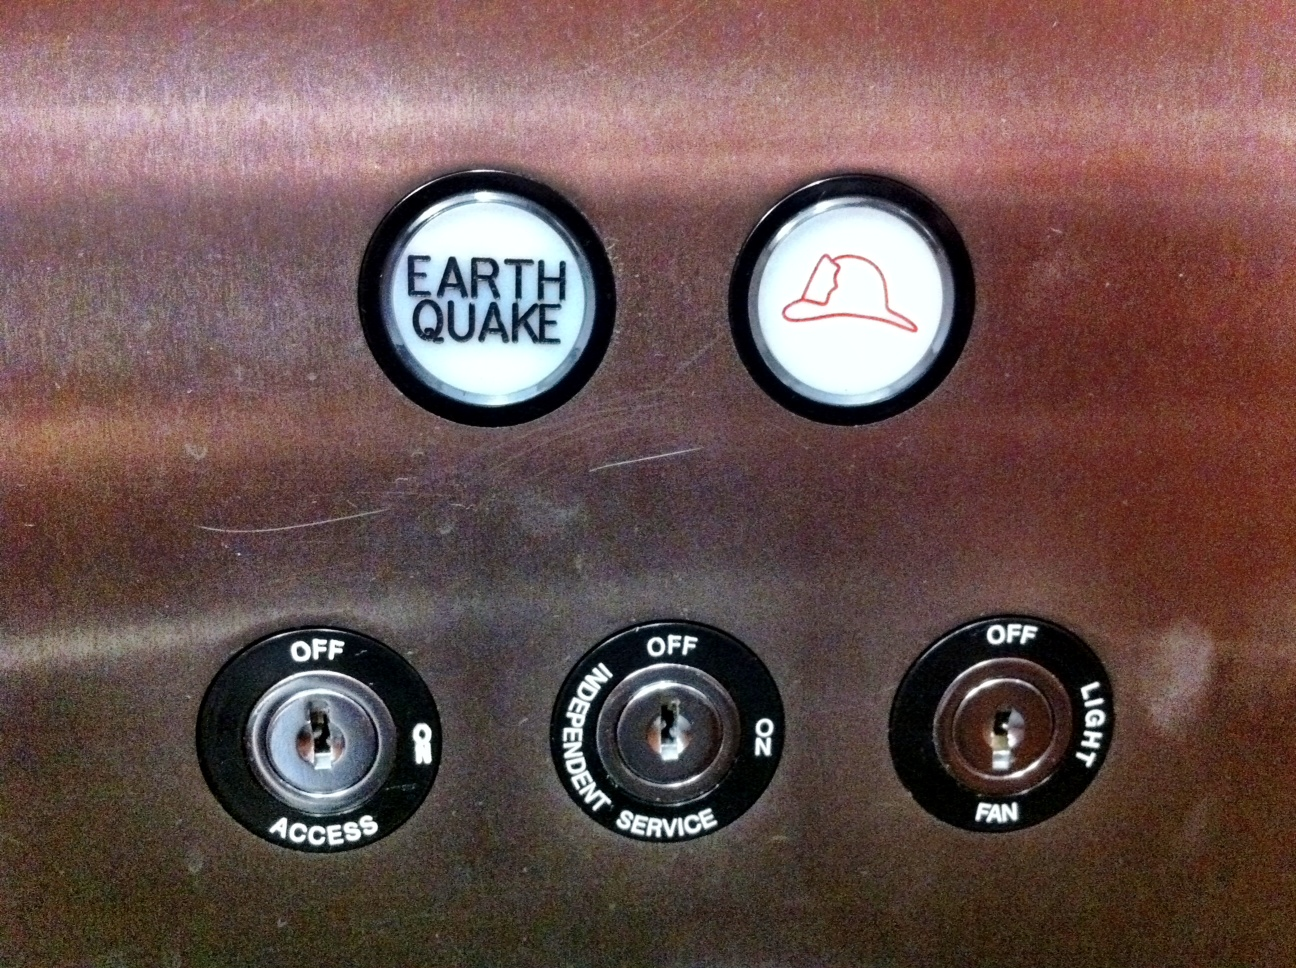 Never Press the Earthquake Button on the Elevator | GWH